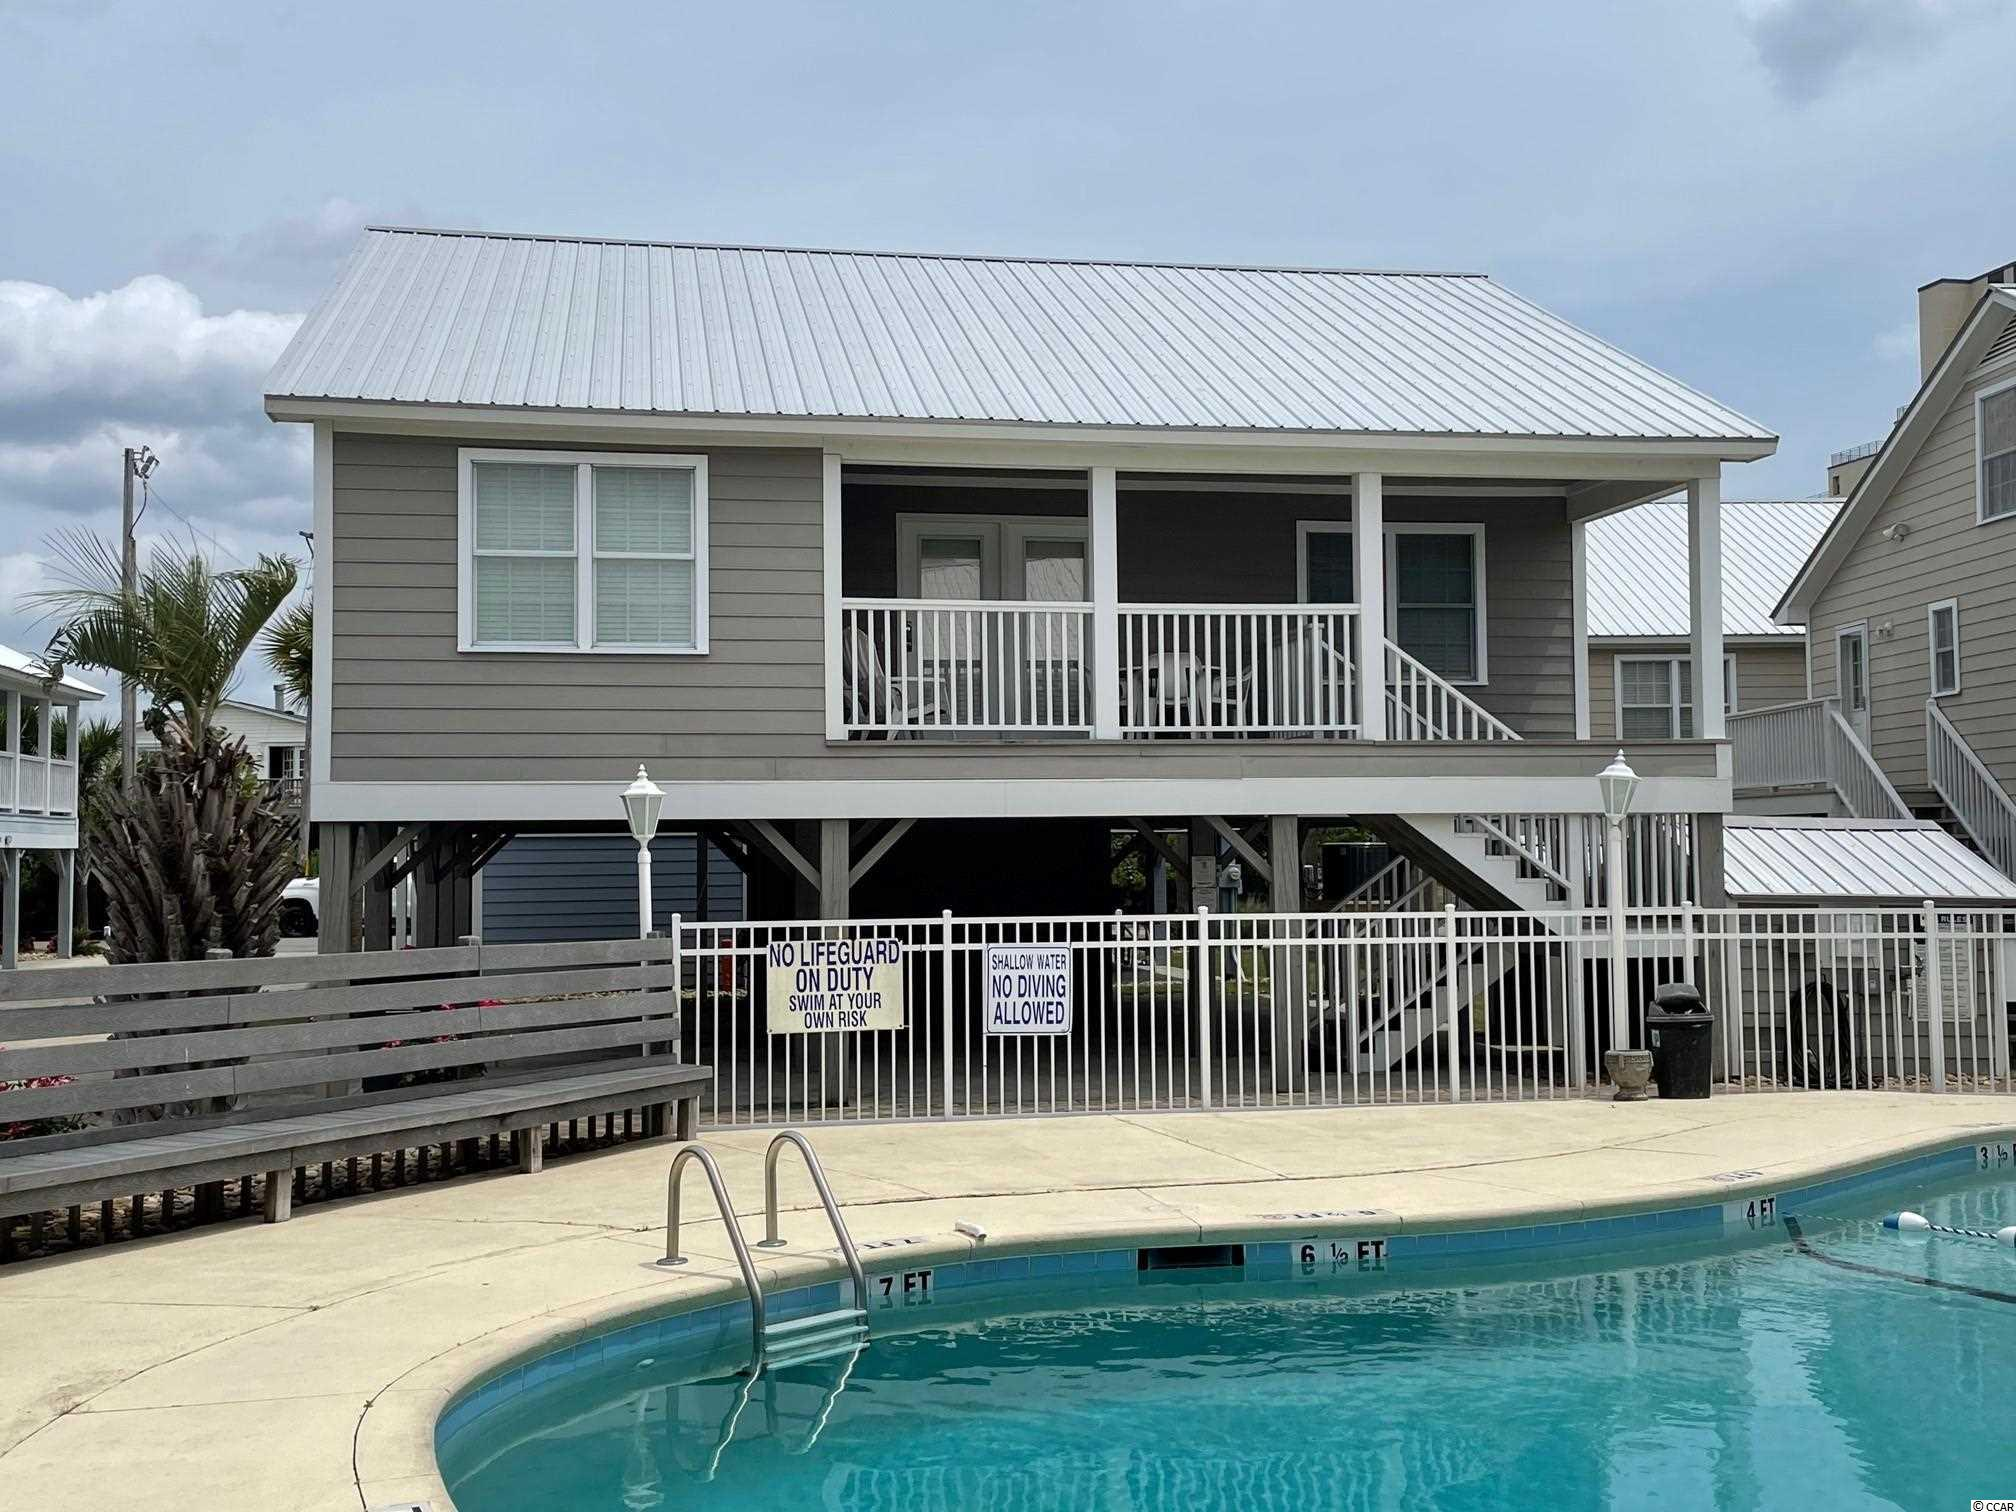 Looking for a great beach get-away?  This quaint cottage is a 3-bedroom, 2-bathroom unit located in the second row community known as Summer Winds.  Unit #11 has a metal roof, is located directly next to the community pool and just a short walk to the beach.  The back porch was enclosed to create a second living area/den and can be used as a separate TV room.  New heat pump was installed in May of 2020.  Unit is on a rental program and is booked for the 2021 summer season!  Contact the listing agent, or your Realtor, for information on the rental history or HOA fees, etc.  Check out the Matterport 3D Virtual Tour here: https://my.matterport.com/show/?m=p1Jy54L7cRK&brand=0